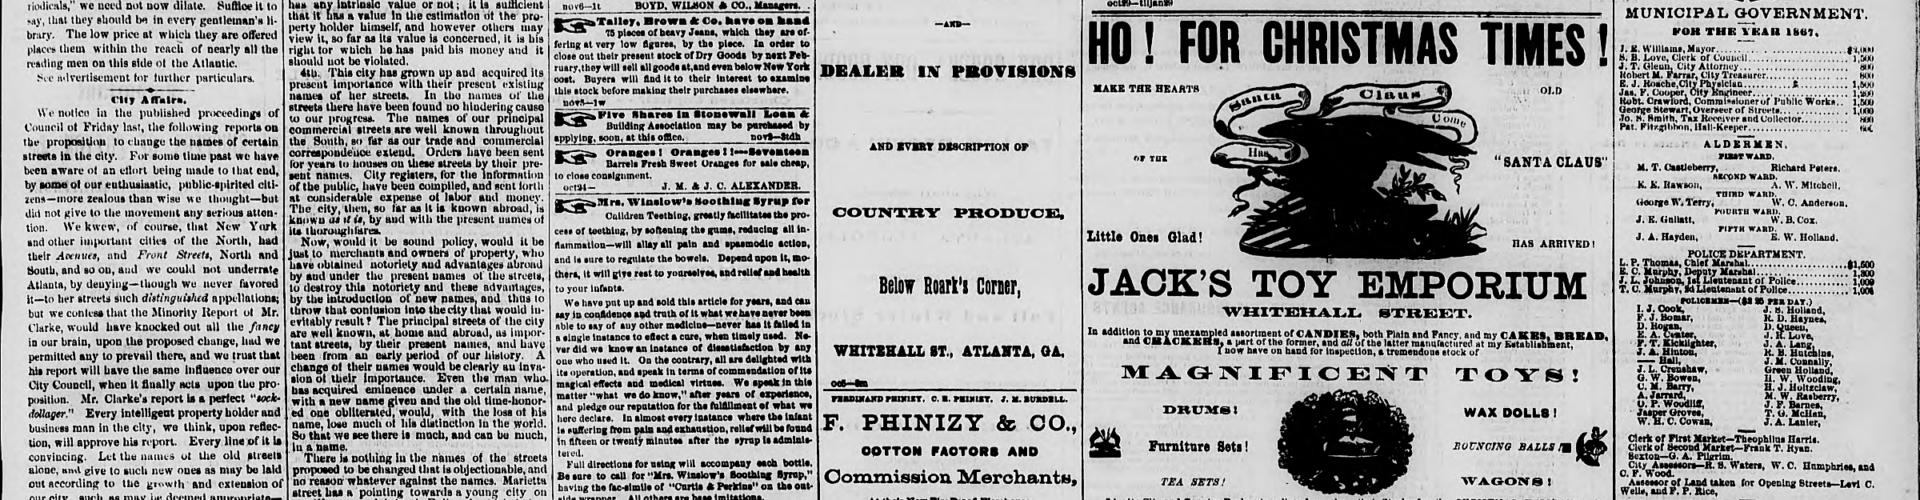 Street Names - The Daily Intelligencer, 6 November 1867, page 3